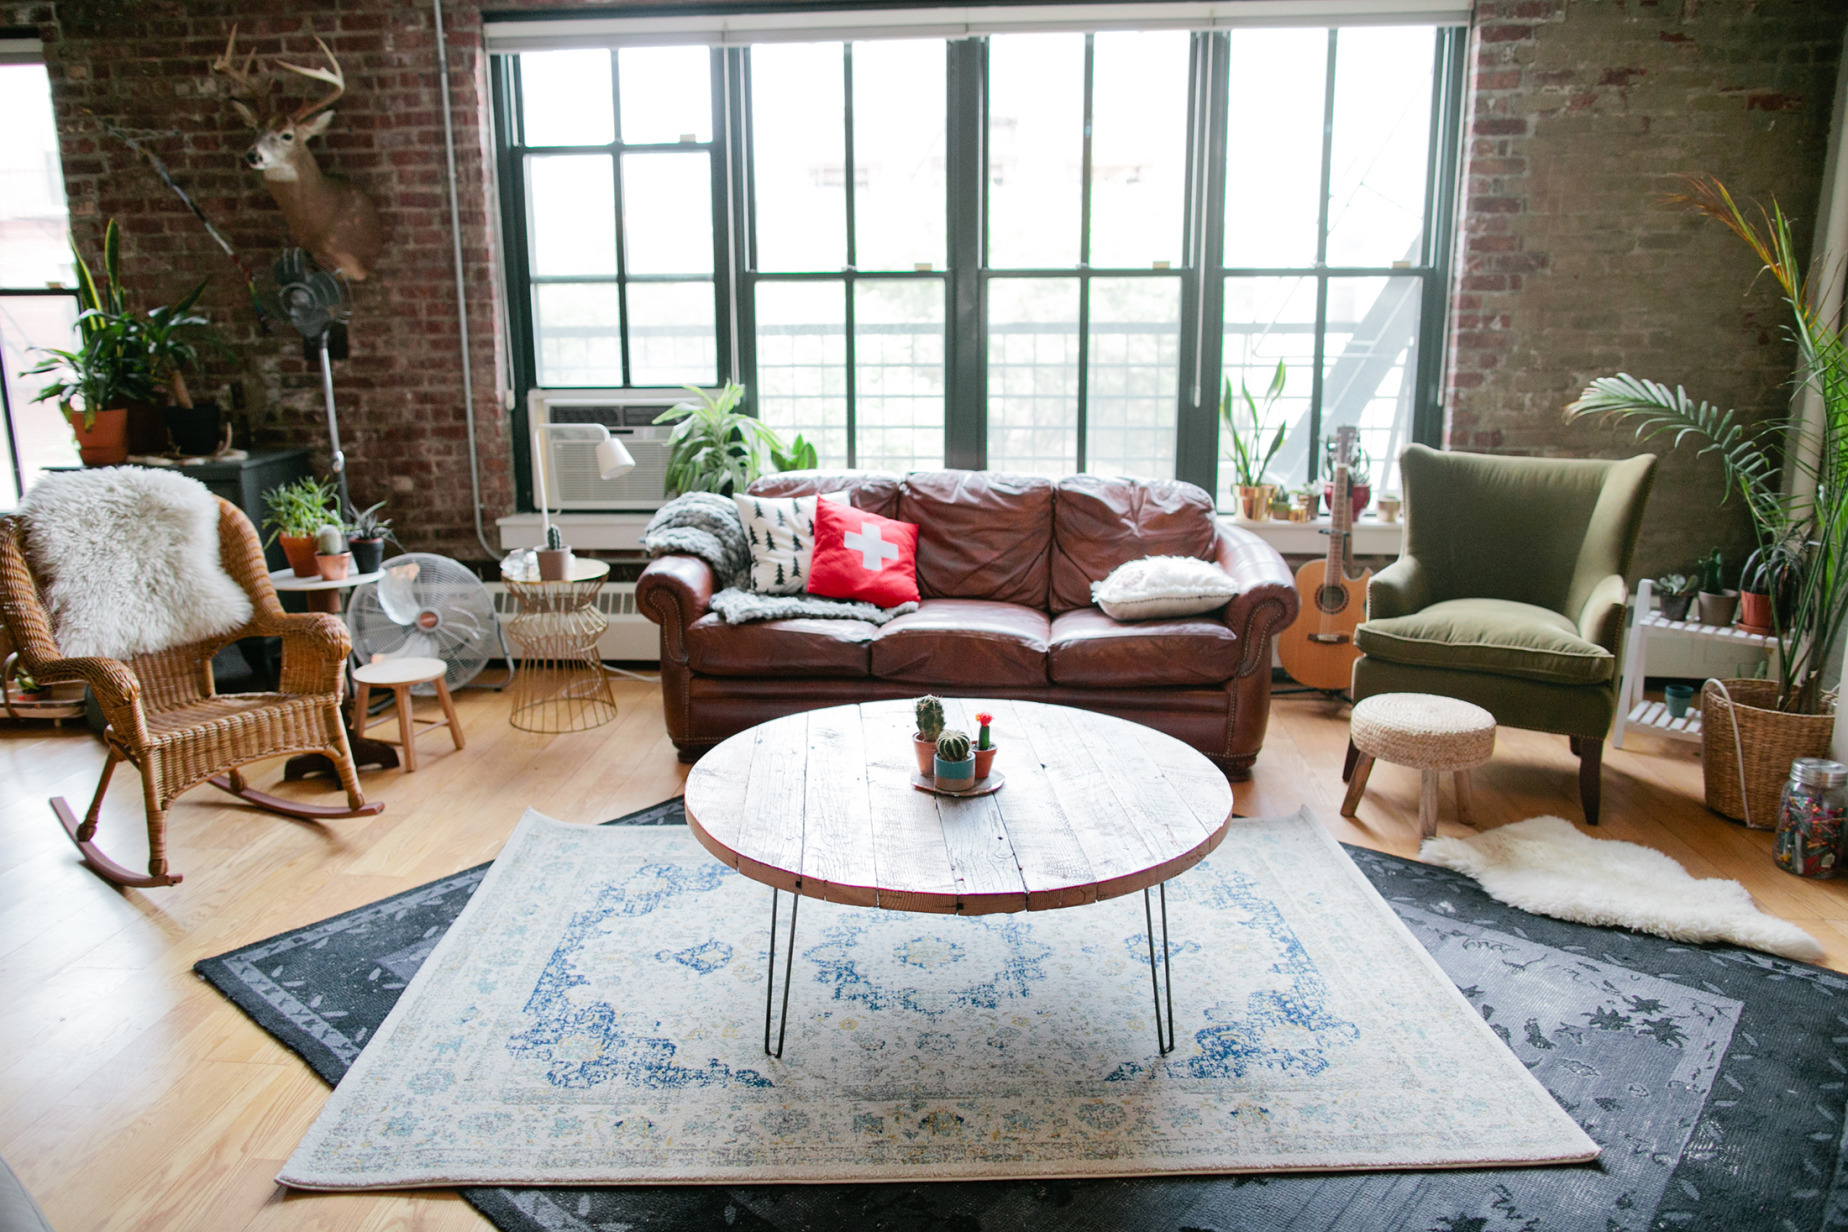 Couch Wars The Startup Trying to Corner the Used Furniture Market